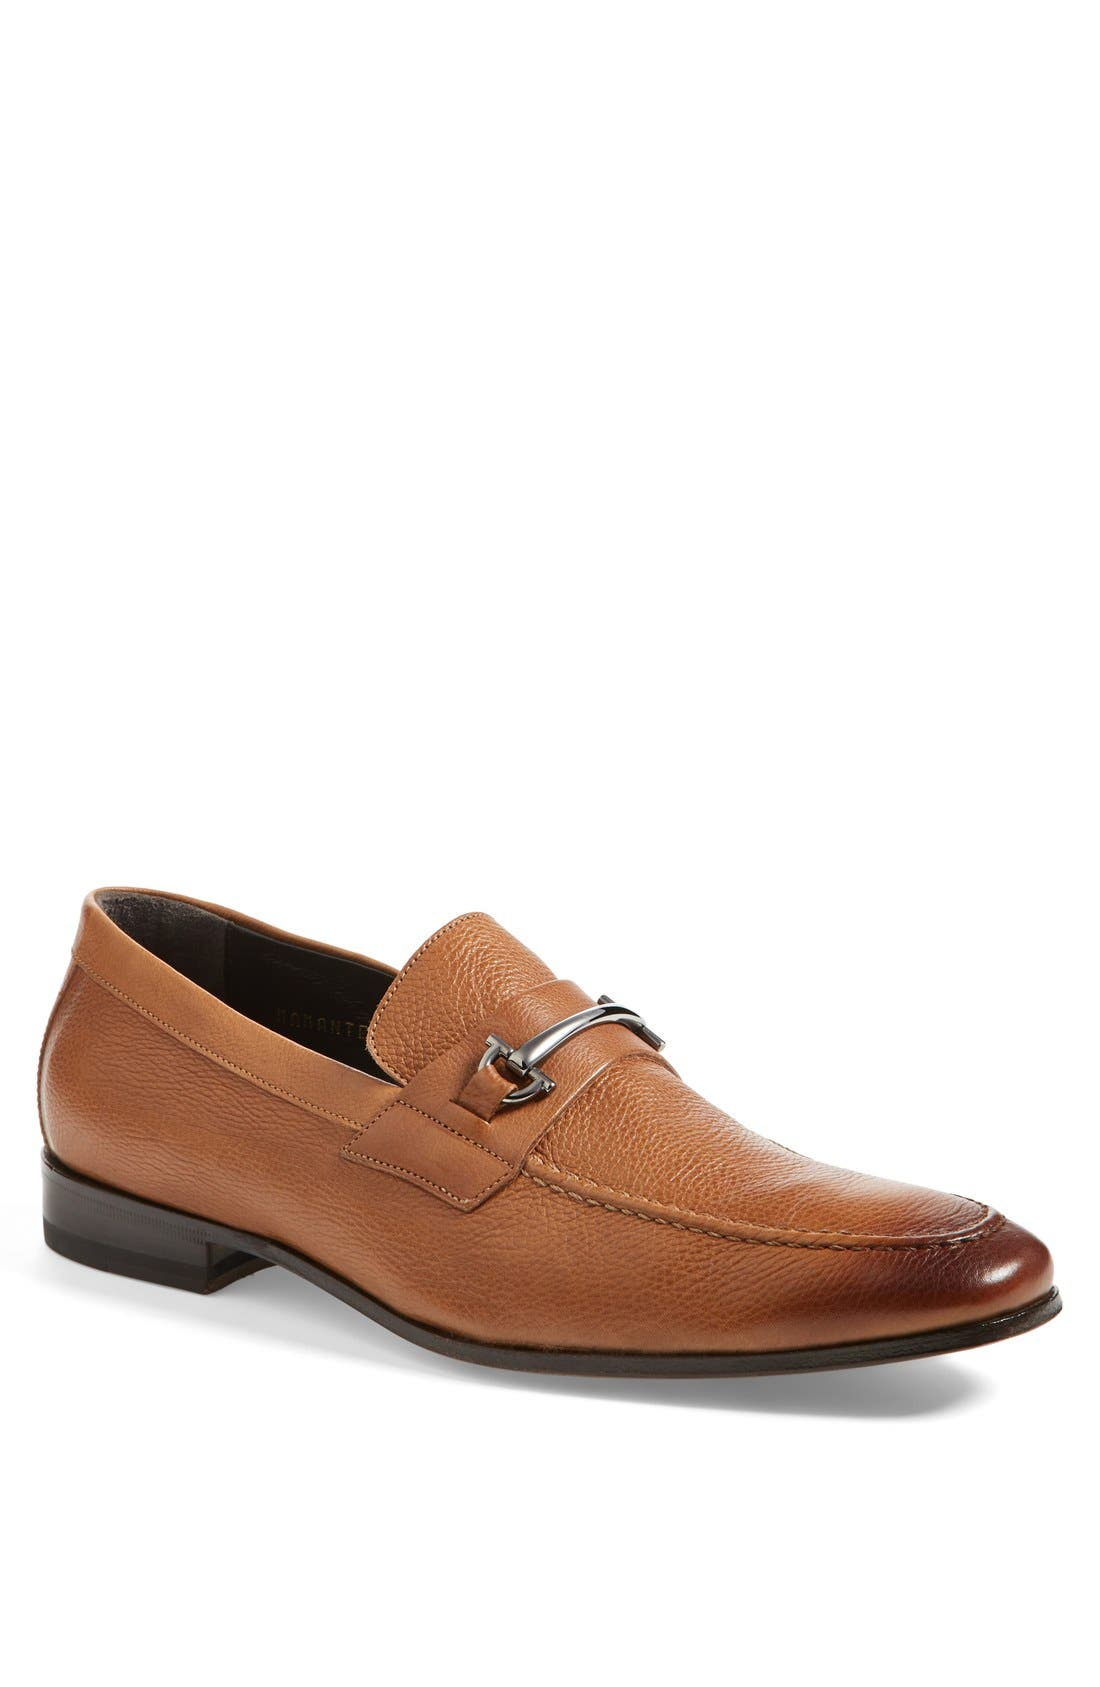 'Mamante II' Pebbled Leather Loafer,                             Main thumbnail 1, color,                             Light Brown